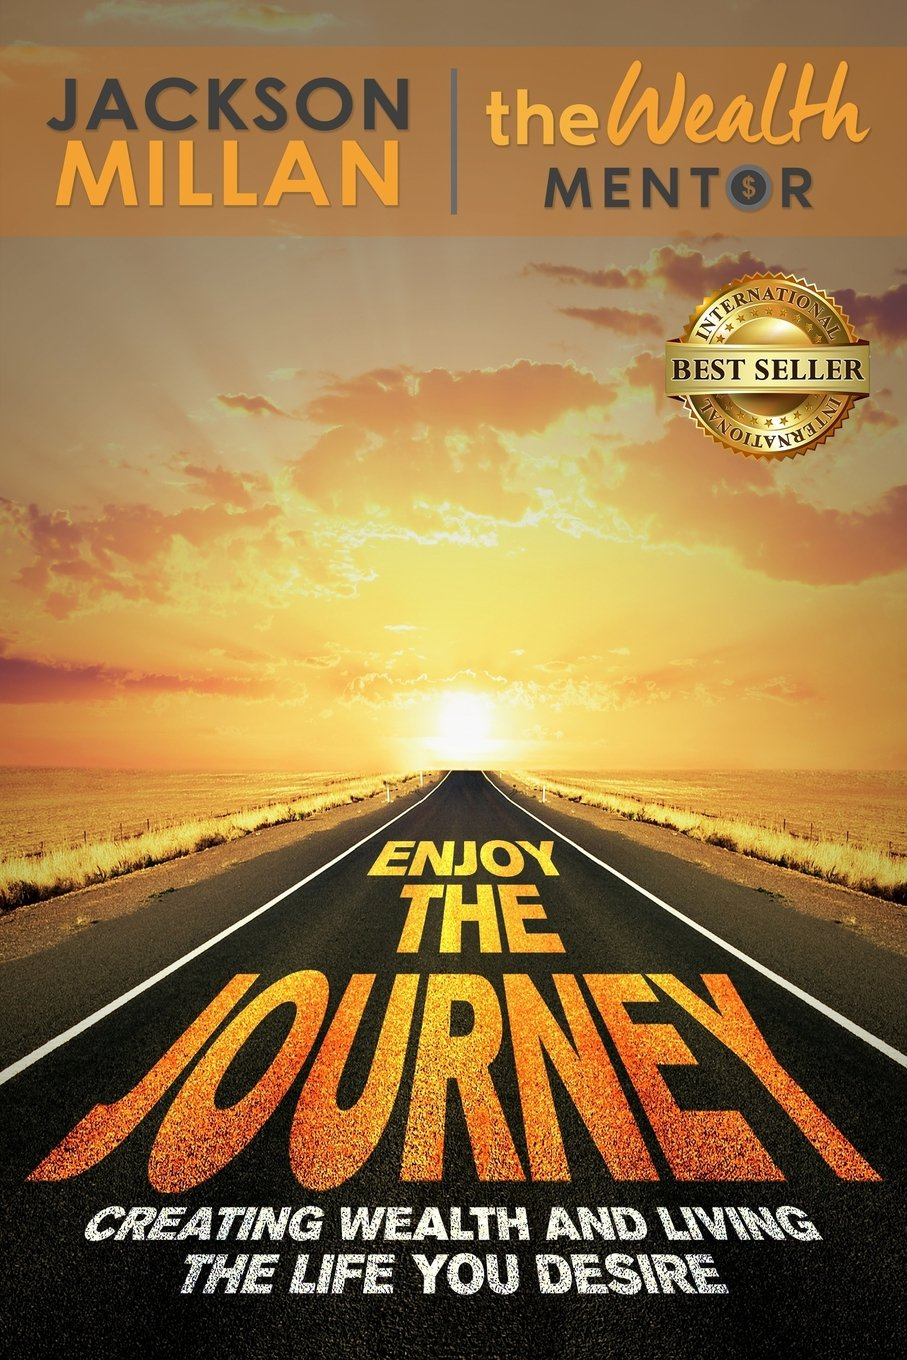 Enjoy The Journey: Creating Wealth and Living the Life You Desire